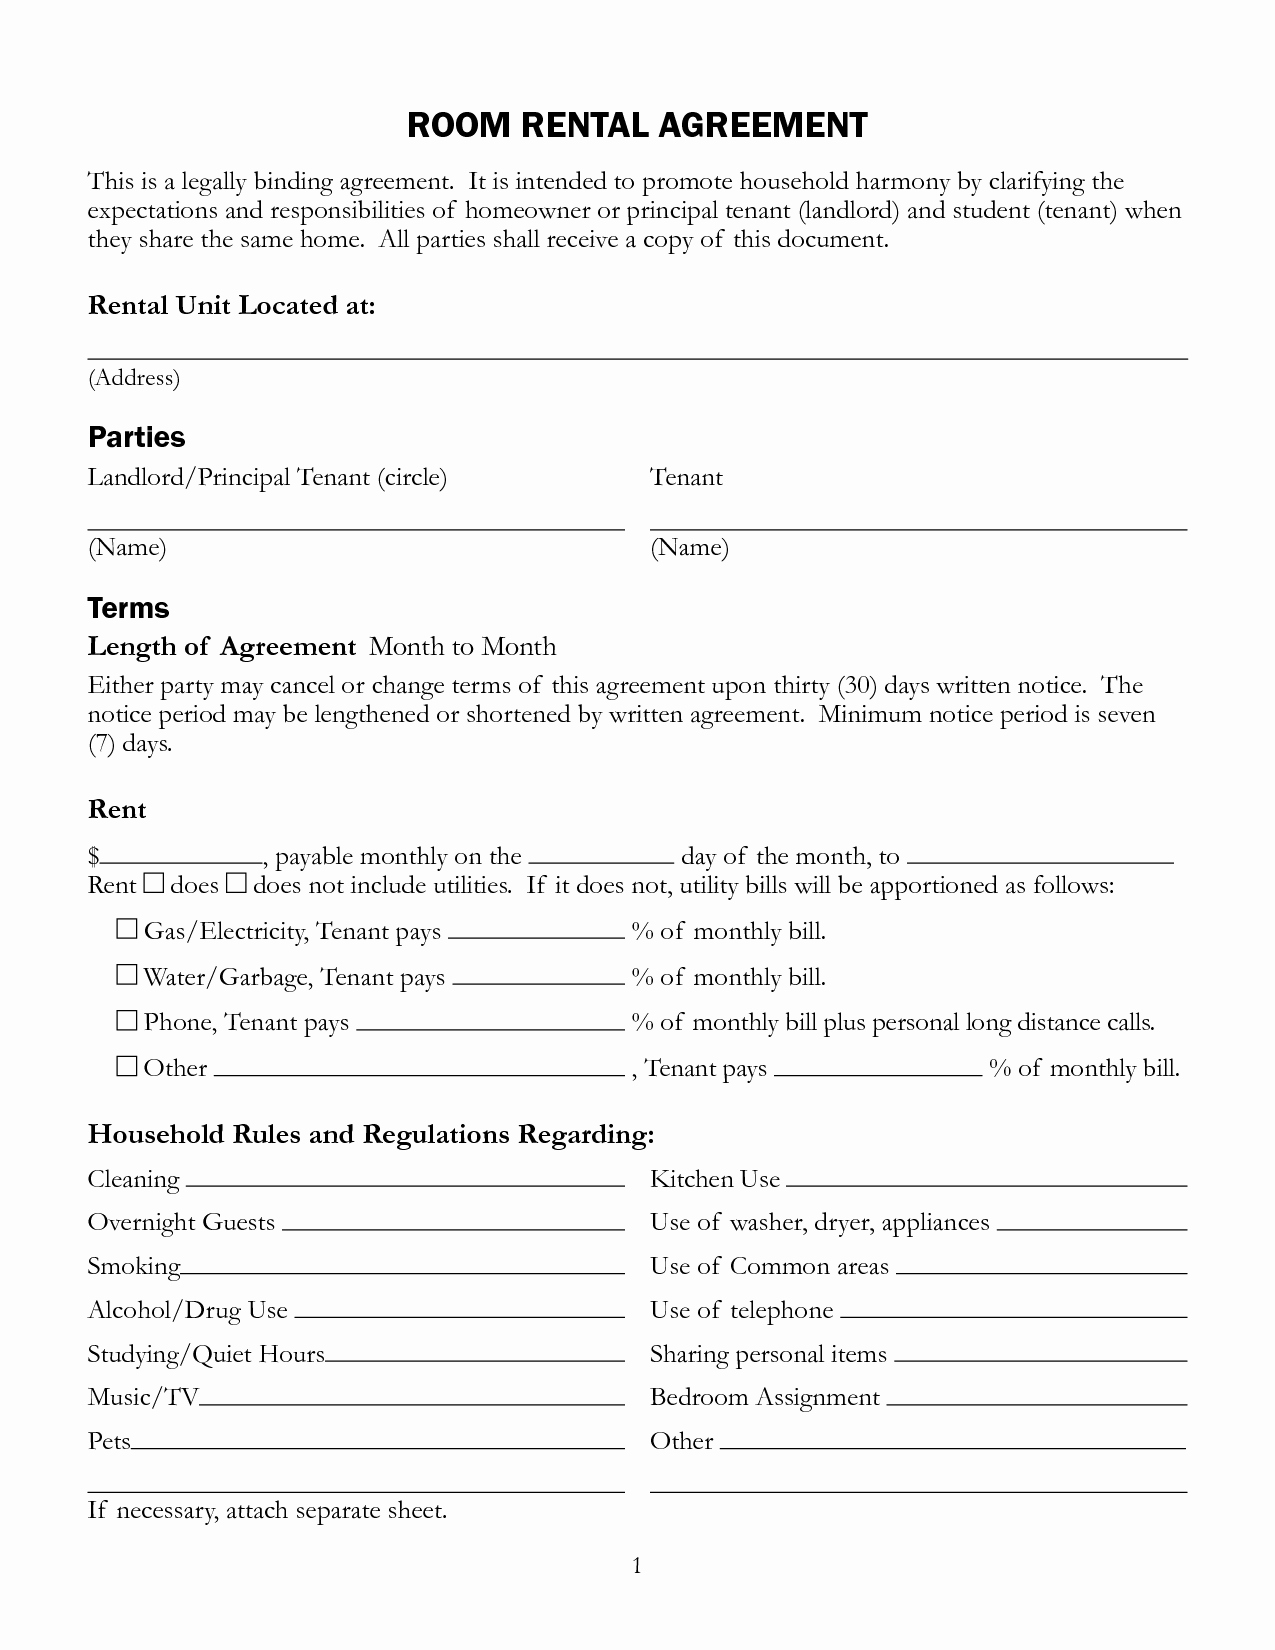 Legal Binding Contract Template New 6 Best Of Legally Binding Agreement Template